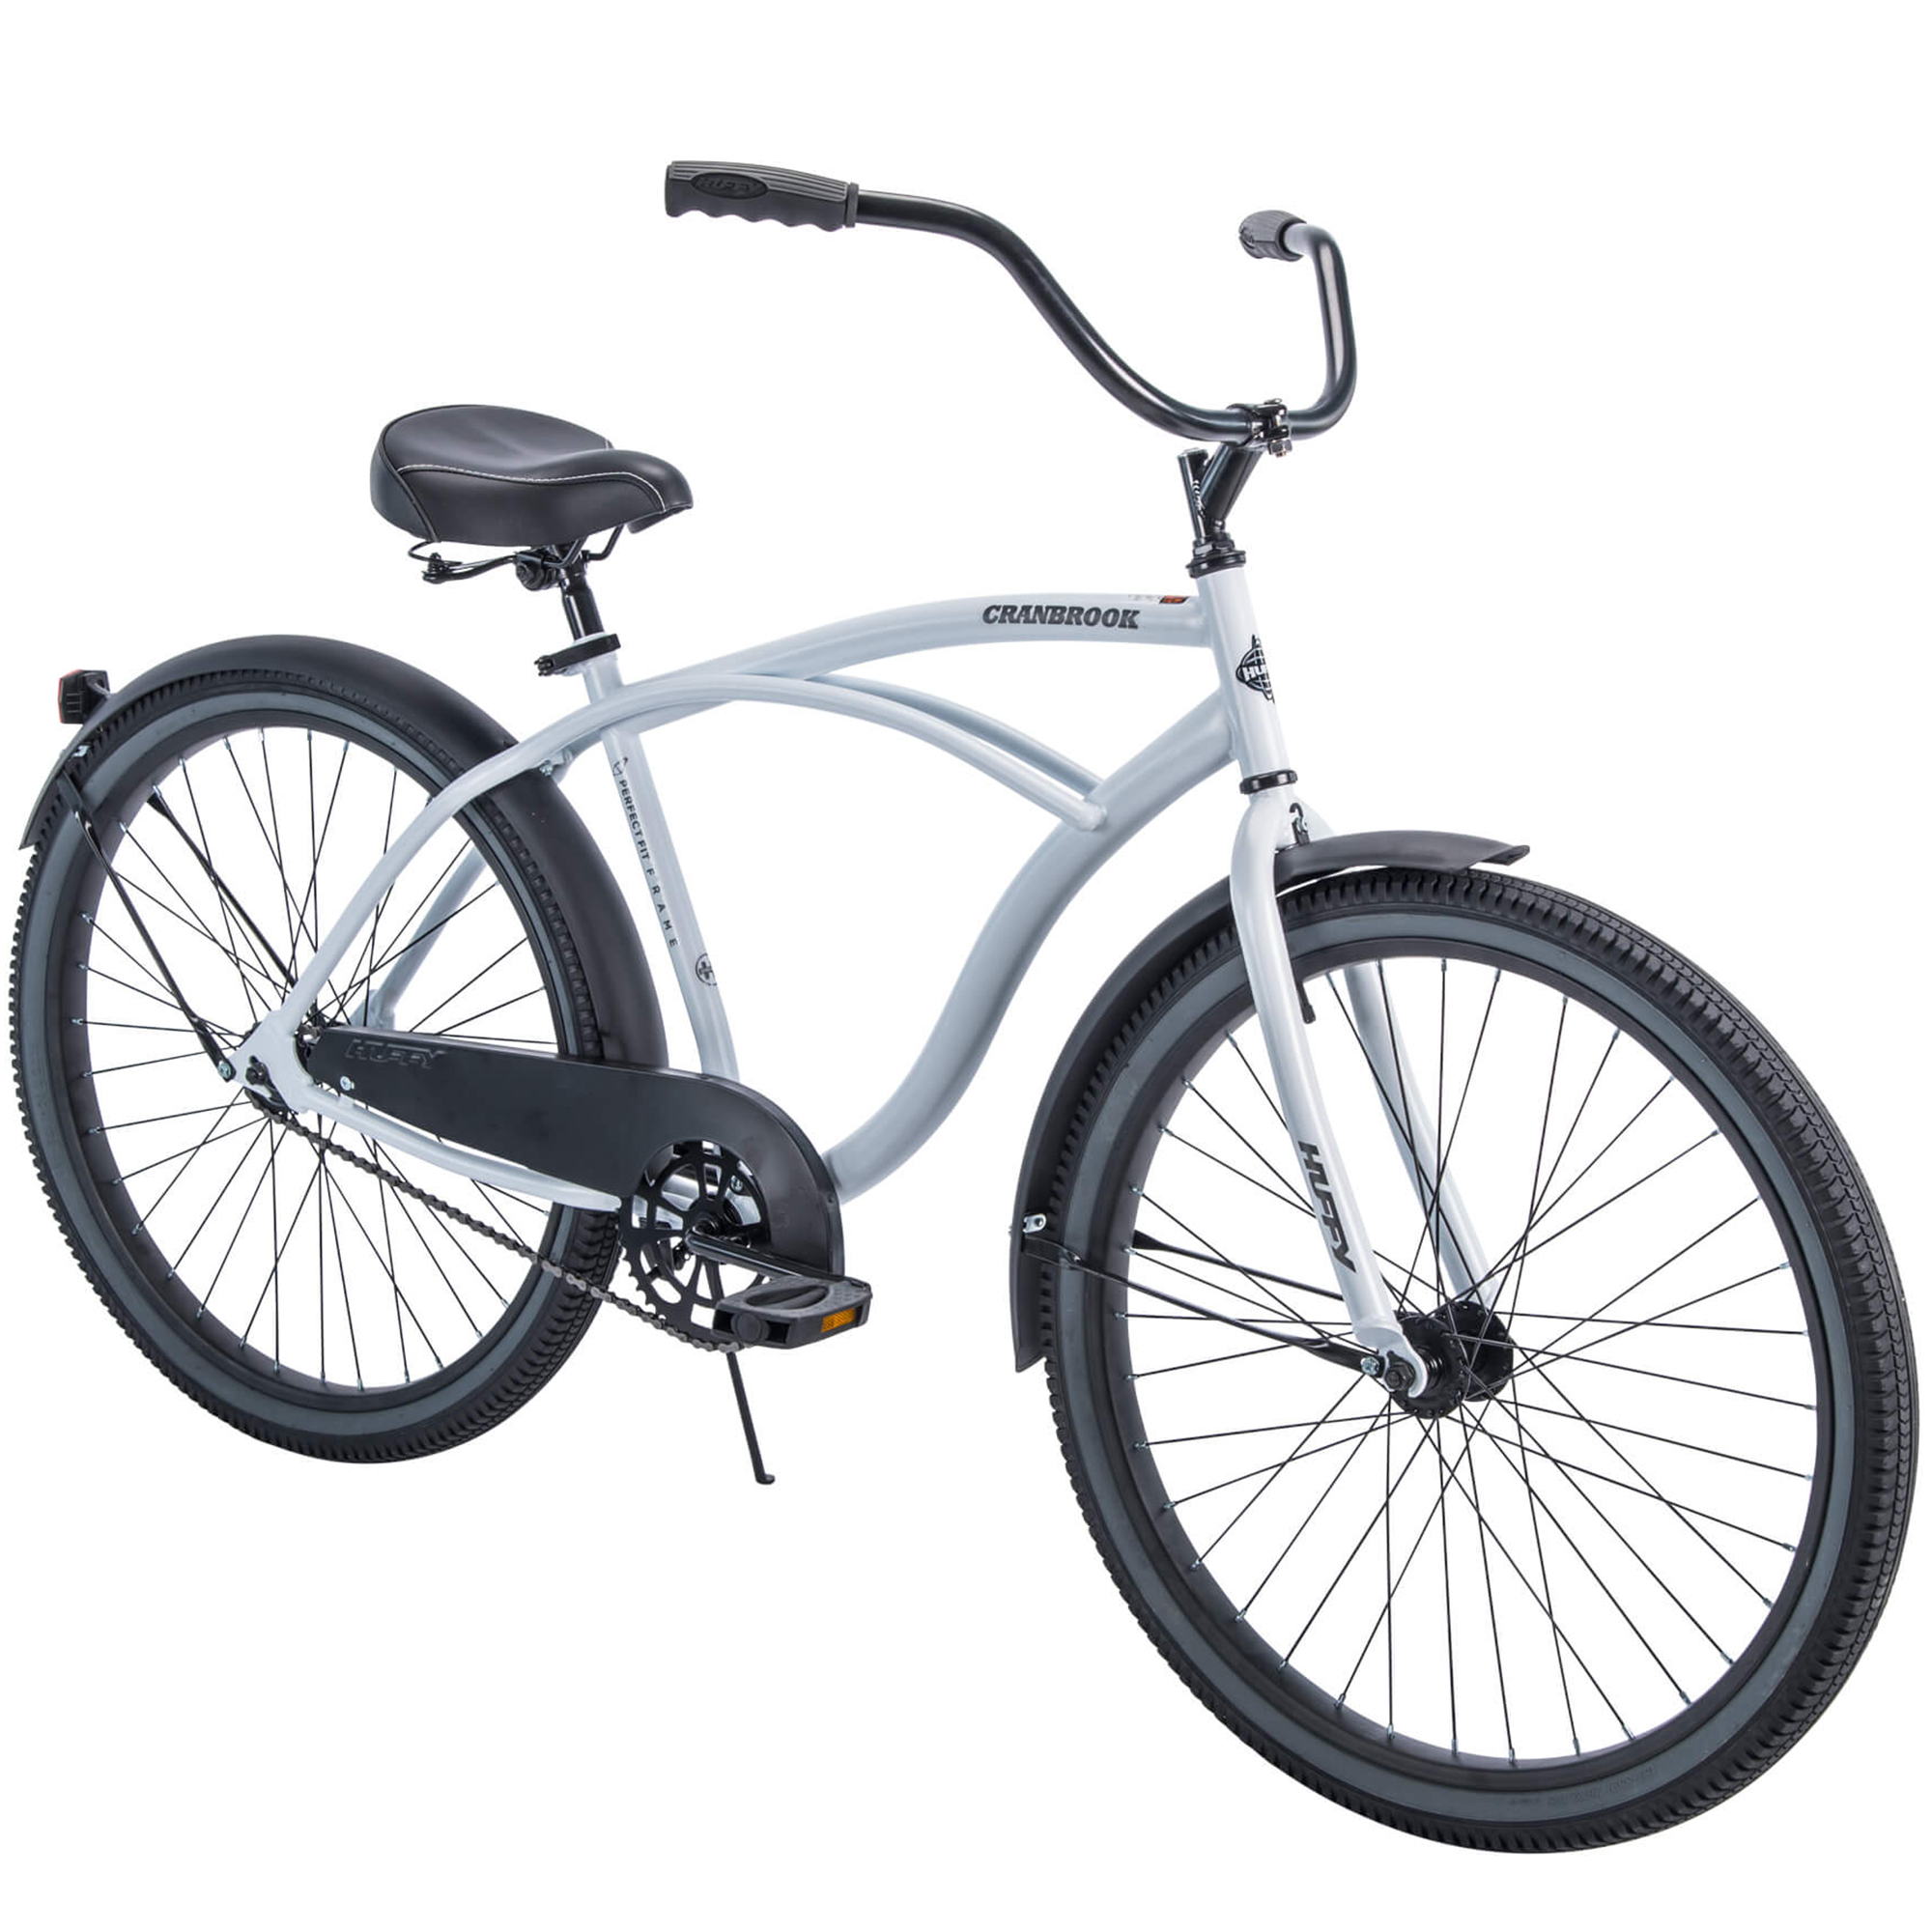 "Huffy 26"" Cranbrook Men's Cruiser Bike with Perfect Fit Frame, White"